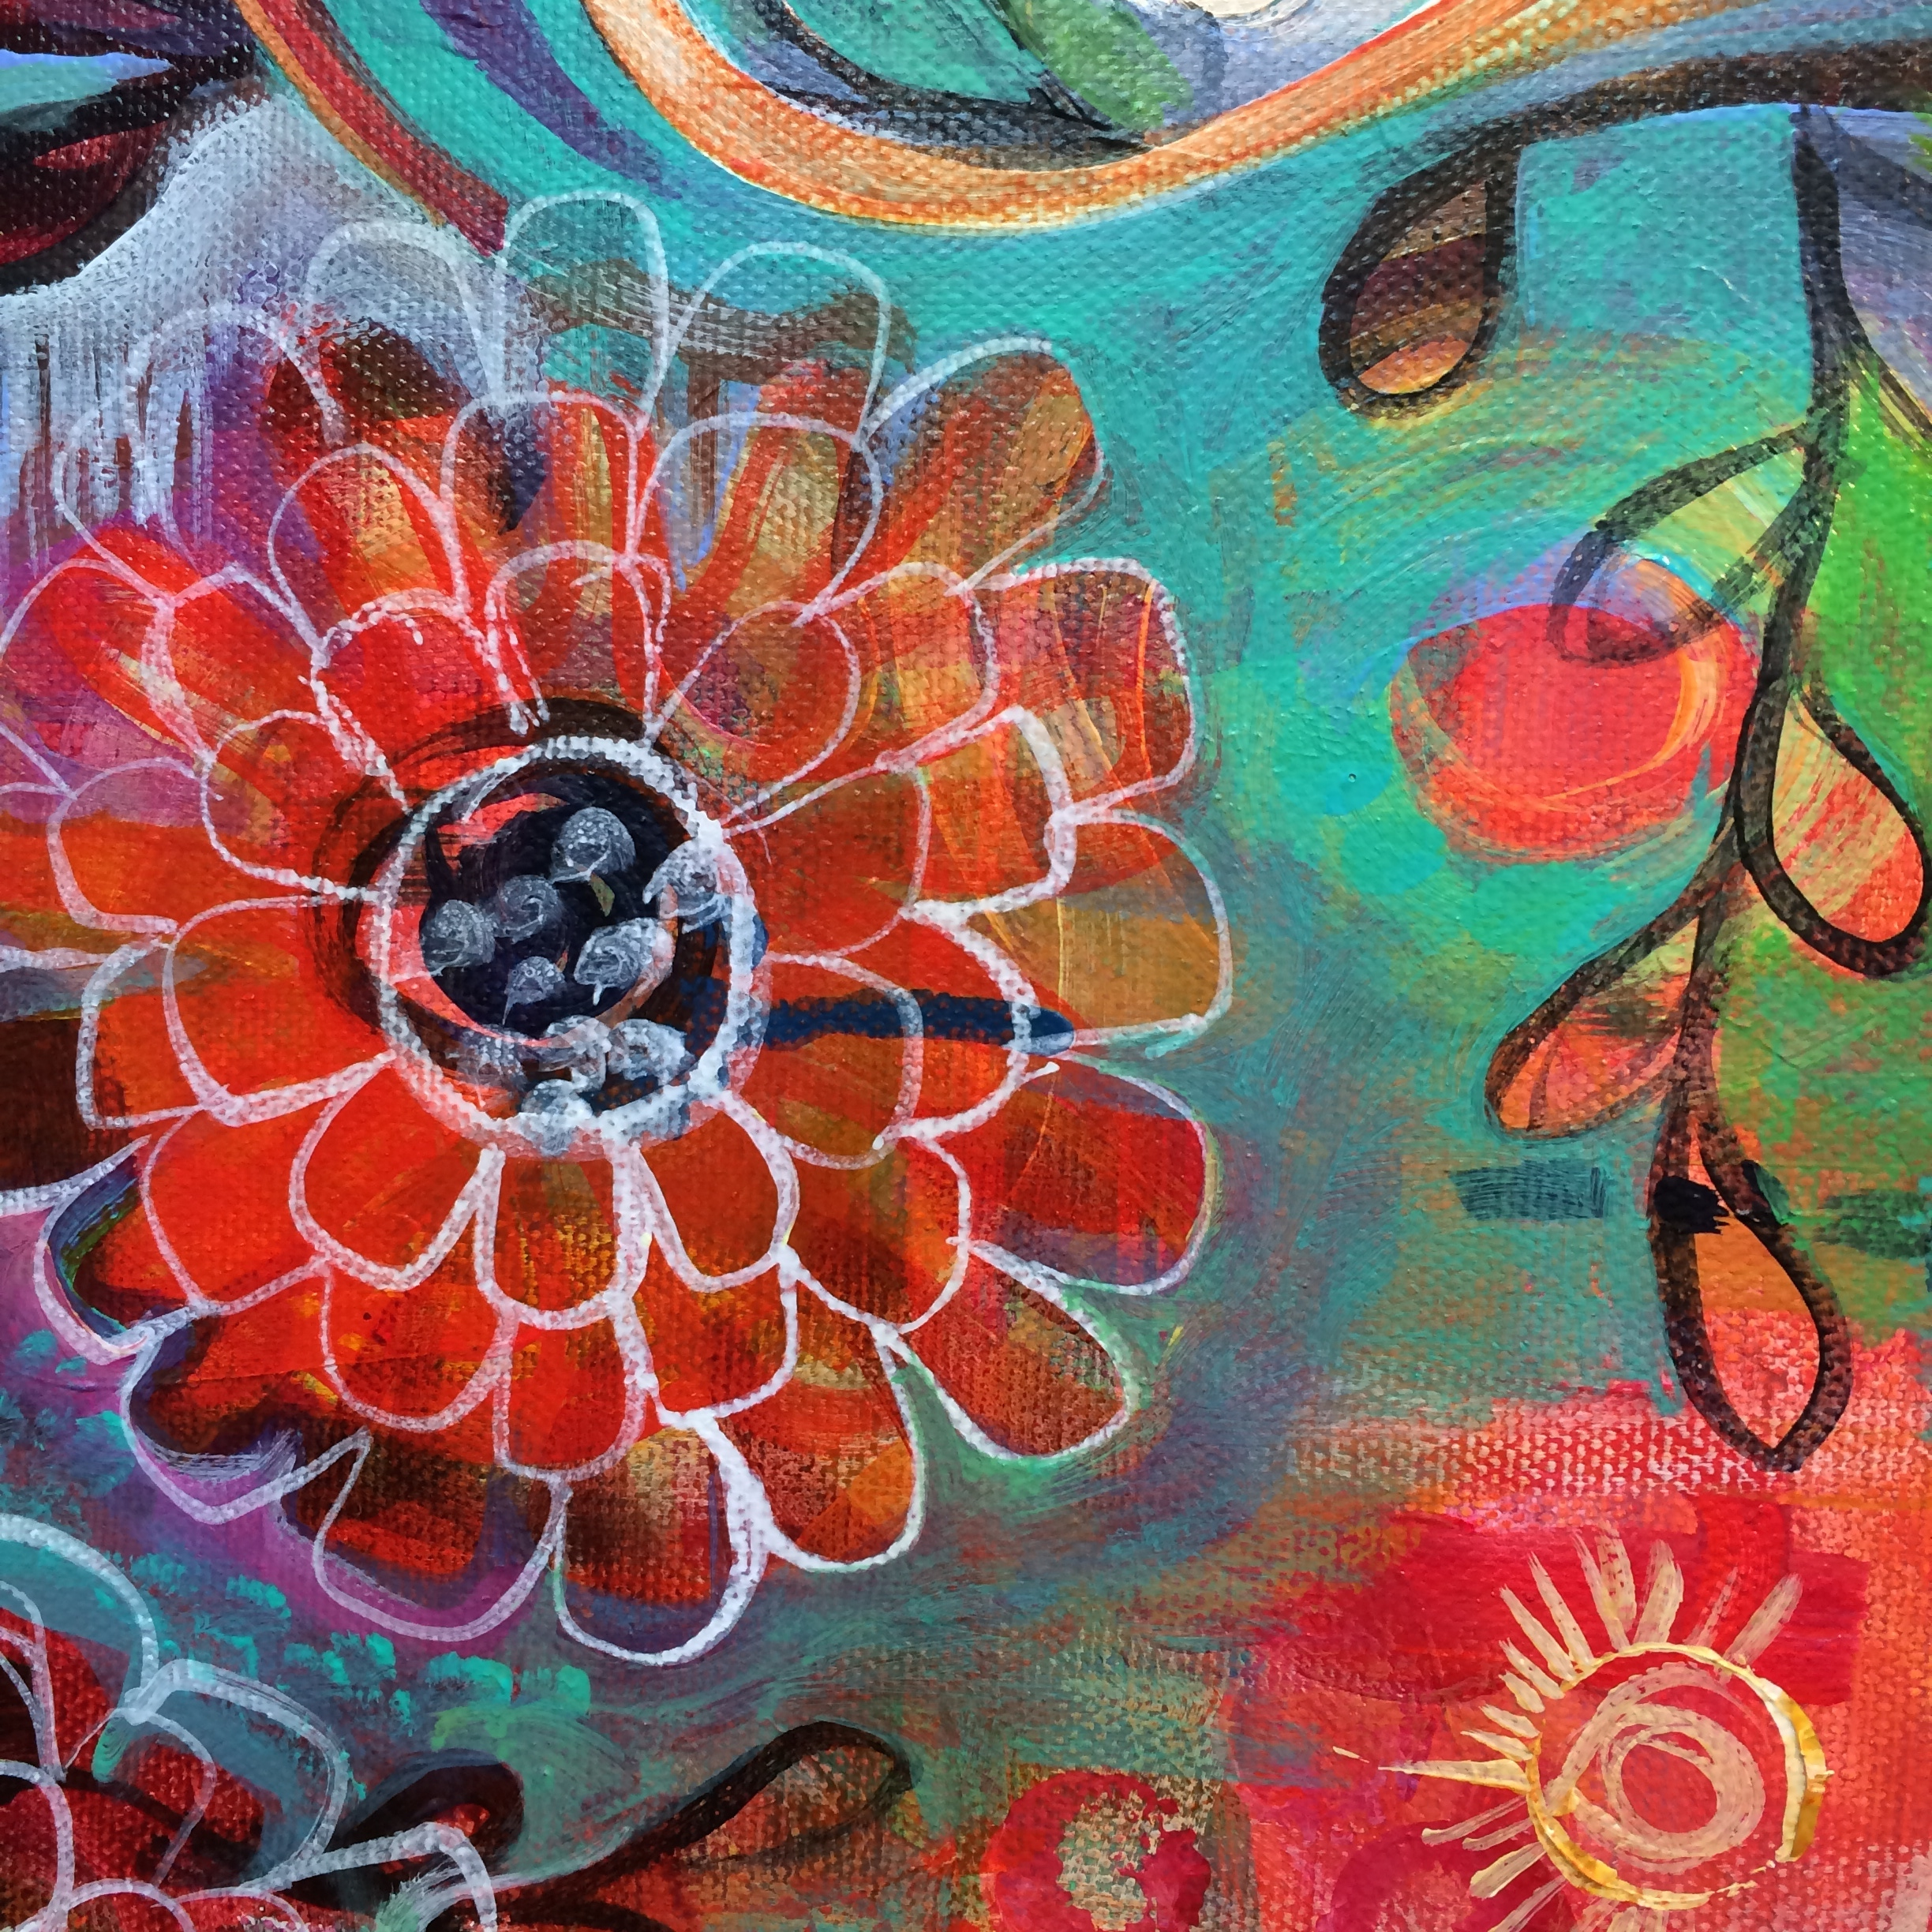 Manifestation 101: Your Dreams are Growing - Jennifer Currie - red multi petaled flower against a blue green abstract background